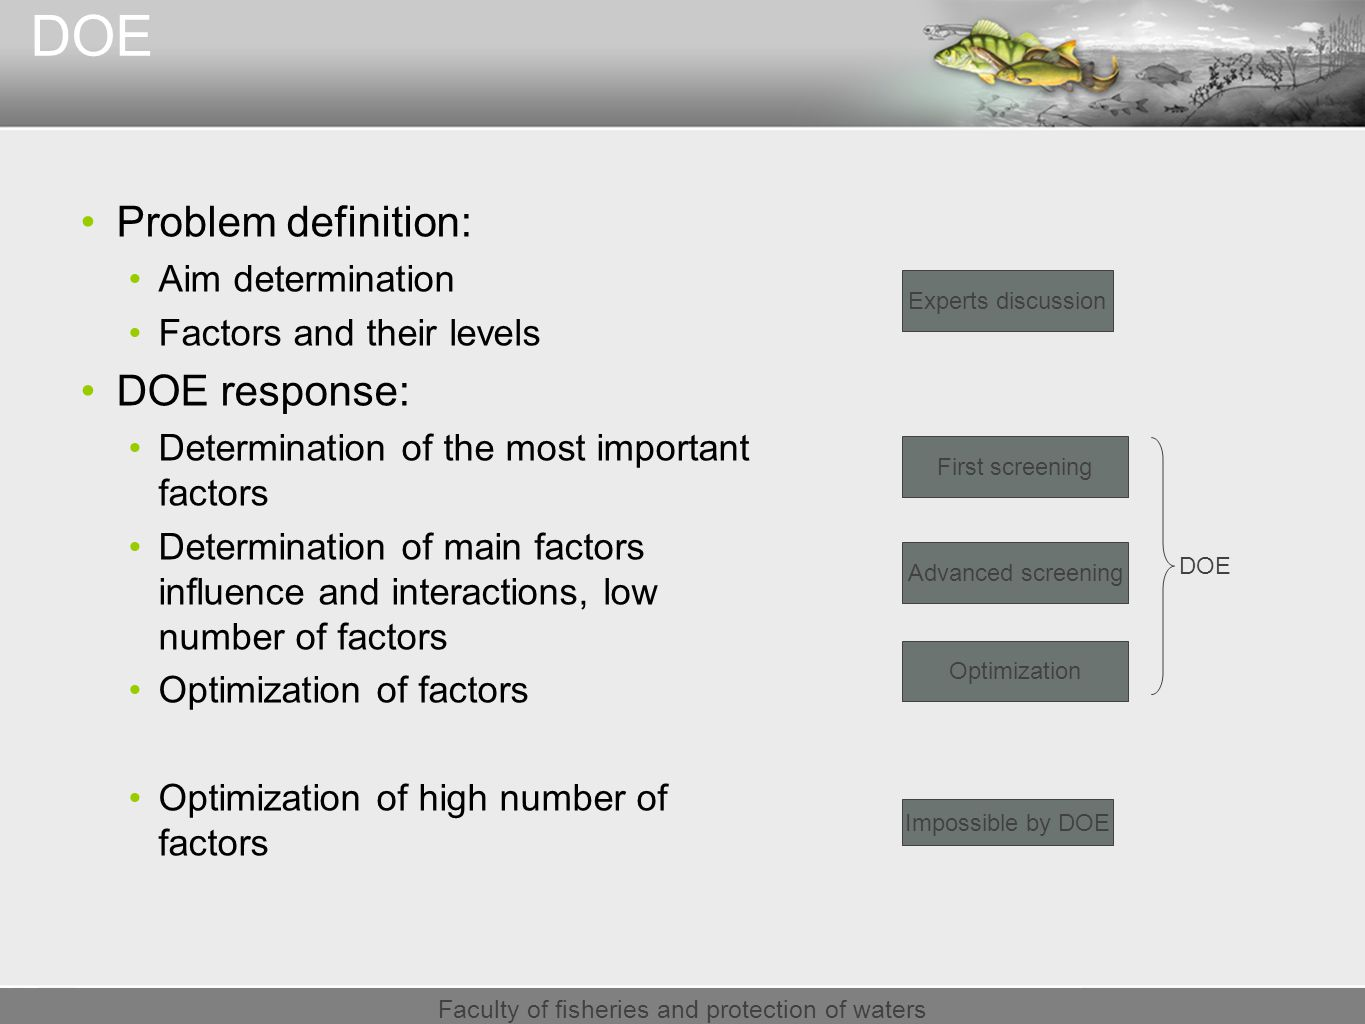 Faculty of fisheries and protection of waters DOE Problem definition: Aim determination Factors and their levels DOE response: Determination of the most important factors Determination of main factors influence and interactions, low number of factors Optimization of factors Optimization of high number of factors Experts discussion Impossible by DOE First screening Advanced screening Optimization DOE